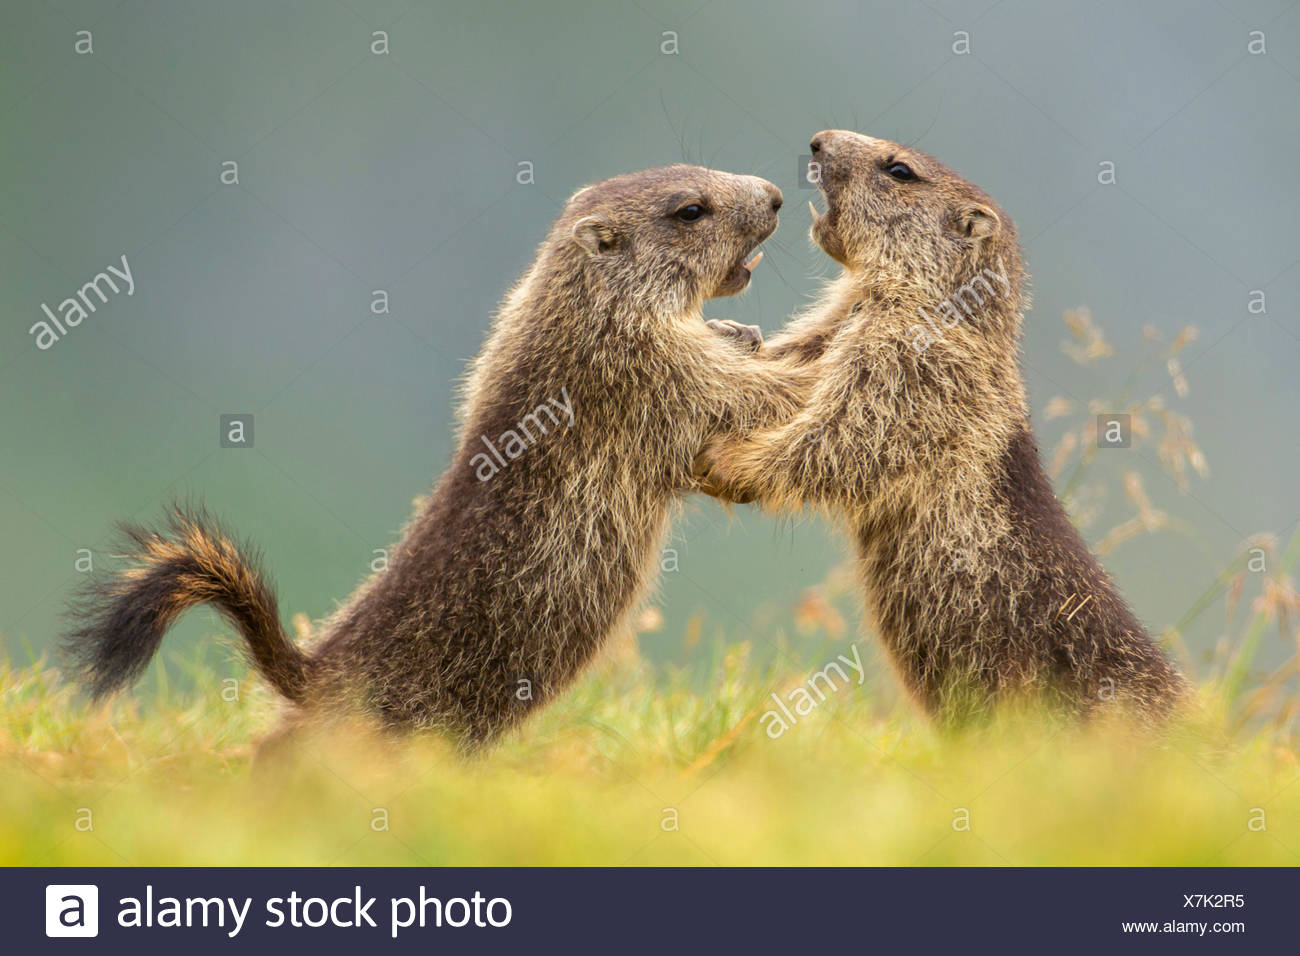 alpine marmot (Marmota marmota), two romping young animals, Austria, Kaernten, Hohe Tauern National Park, Grossglockner Stock Photo